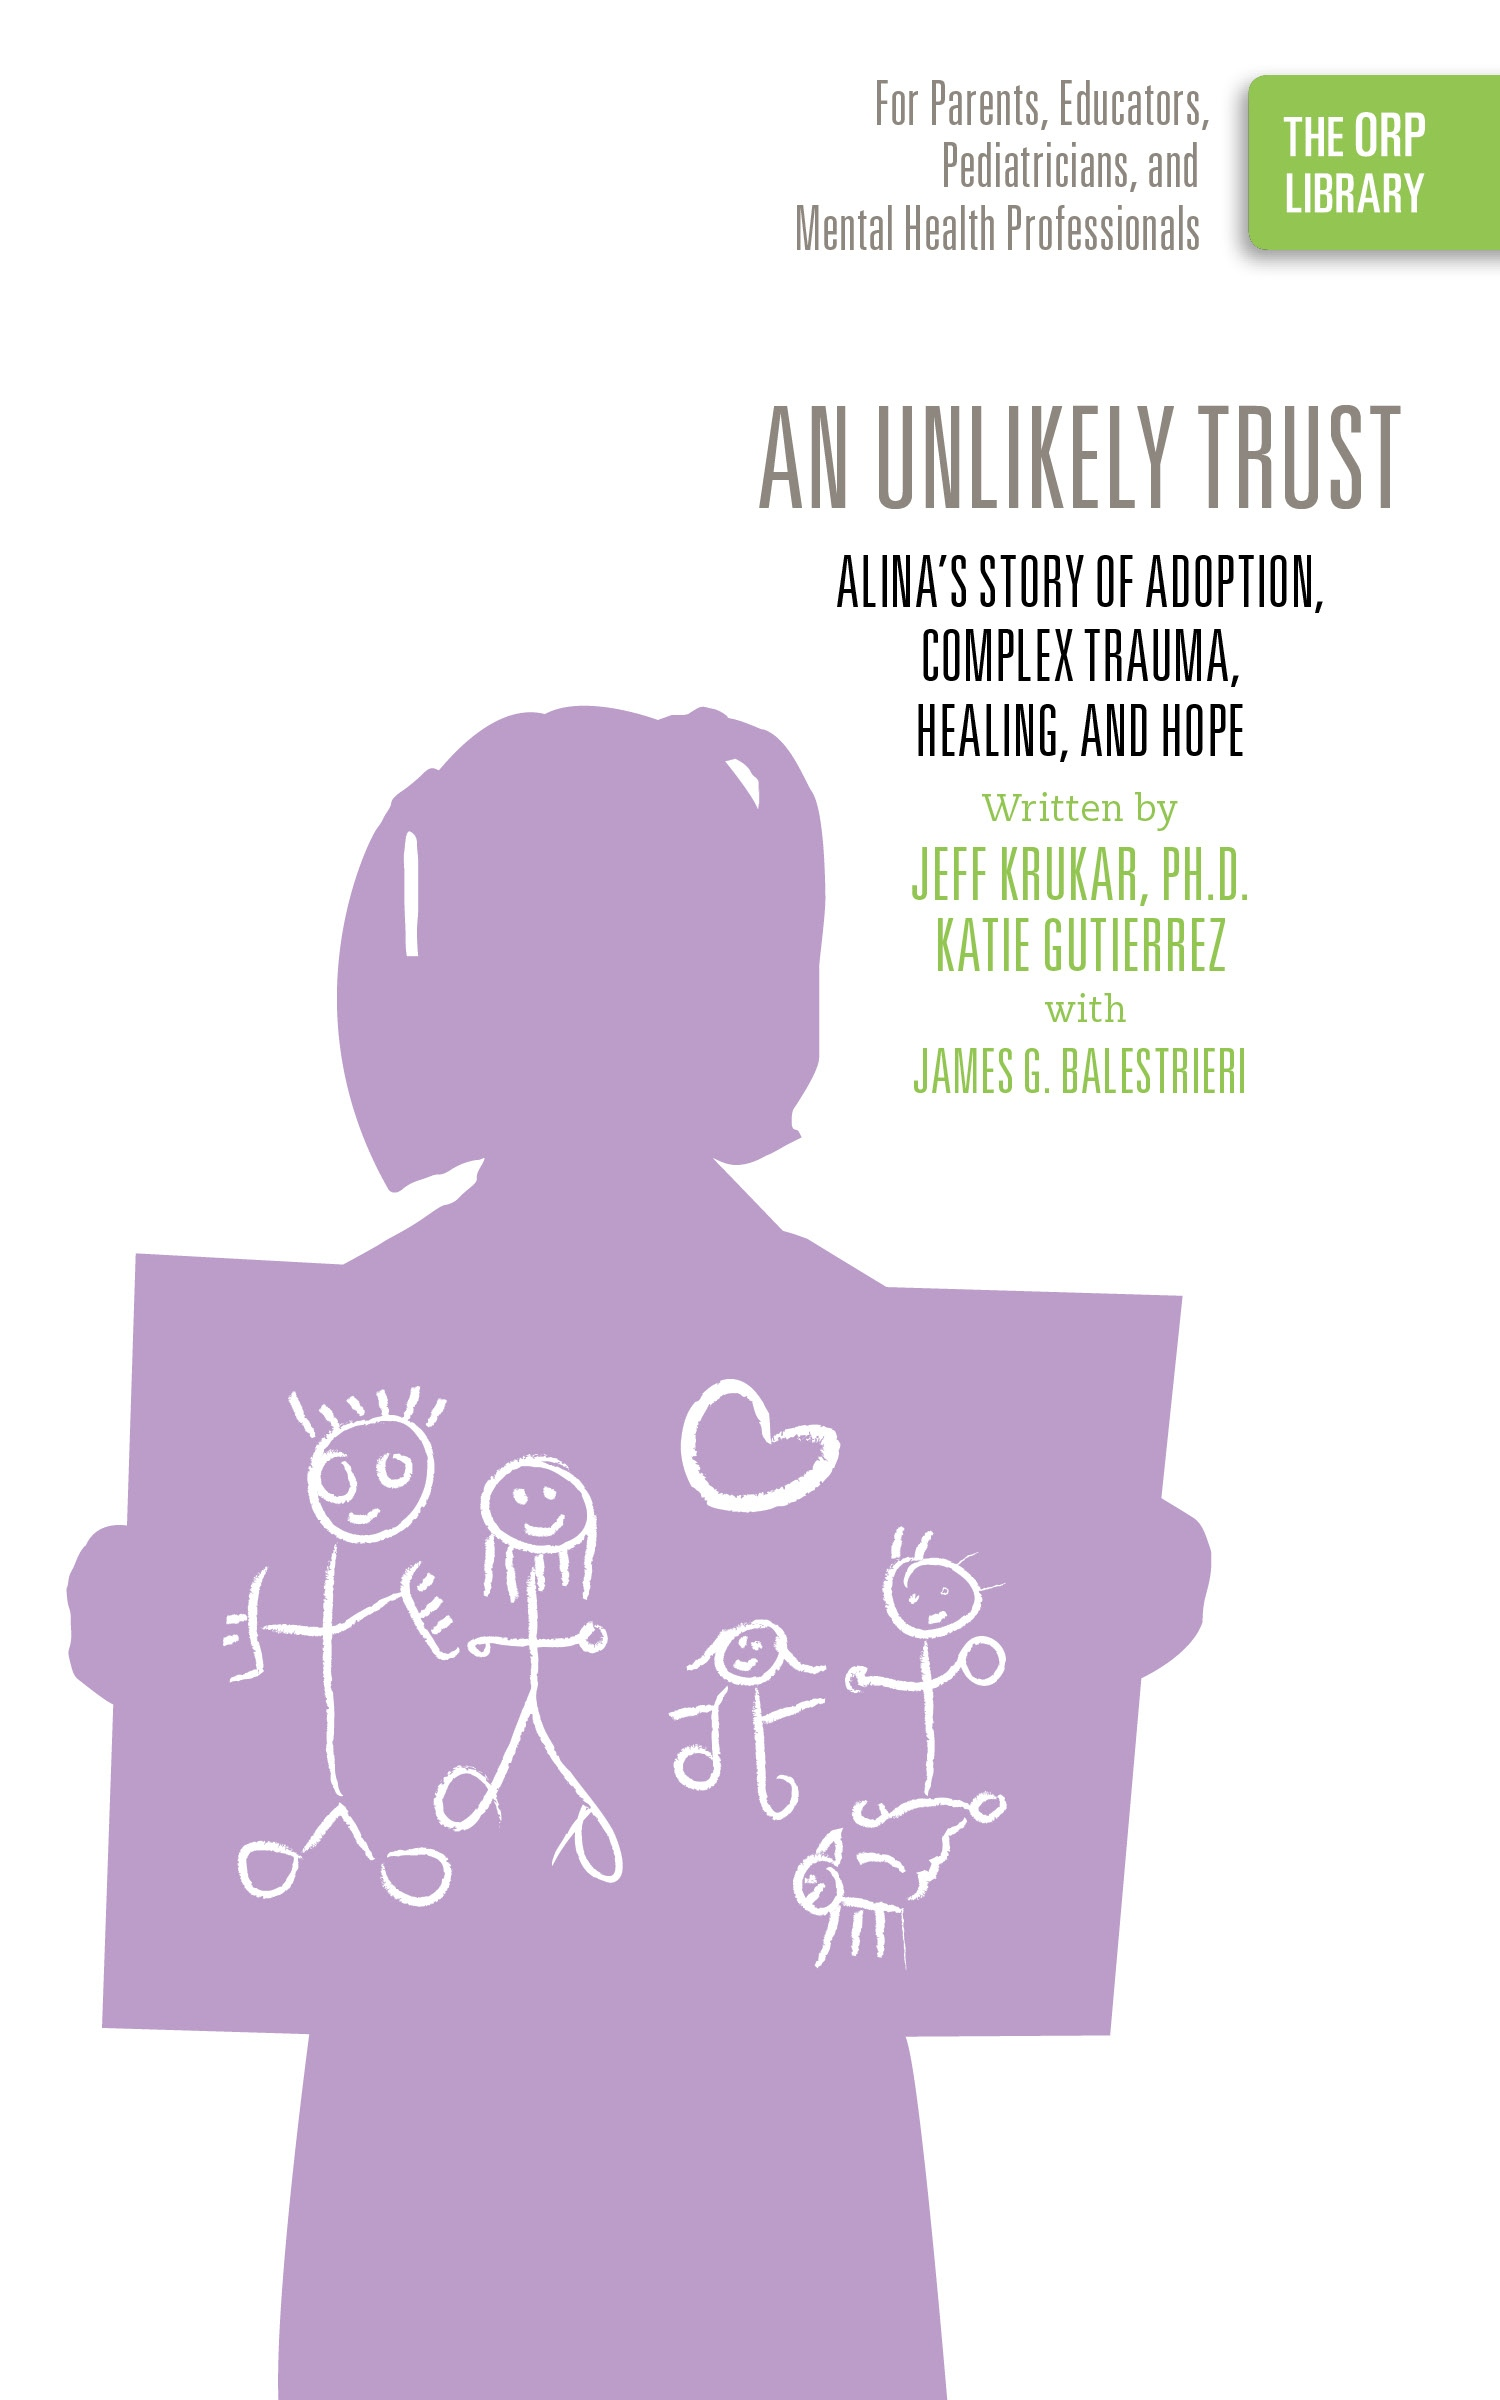 An Unlikely Trust: Alina's Story of Adoption, Complex Trauma, Healing, and Hope (The ORP Library- Volume 3)